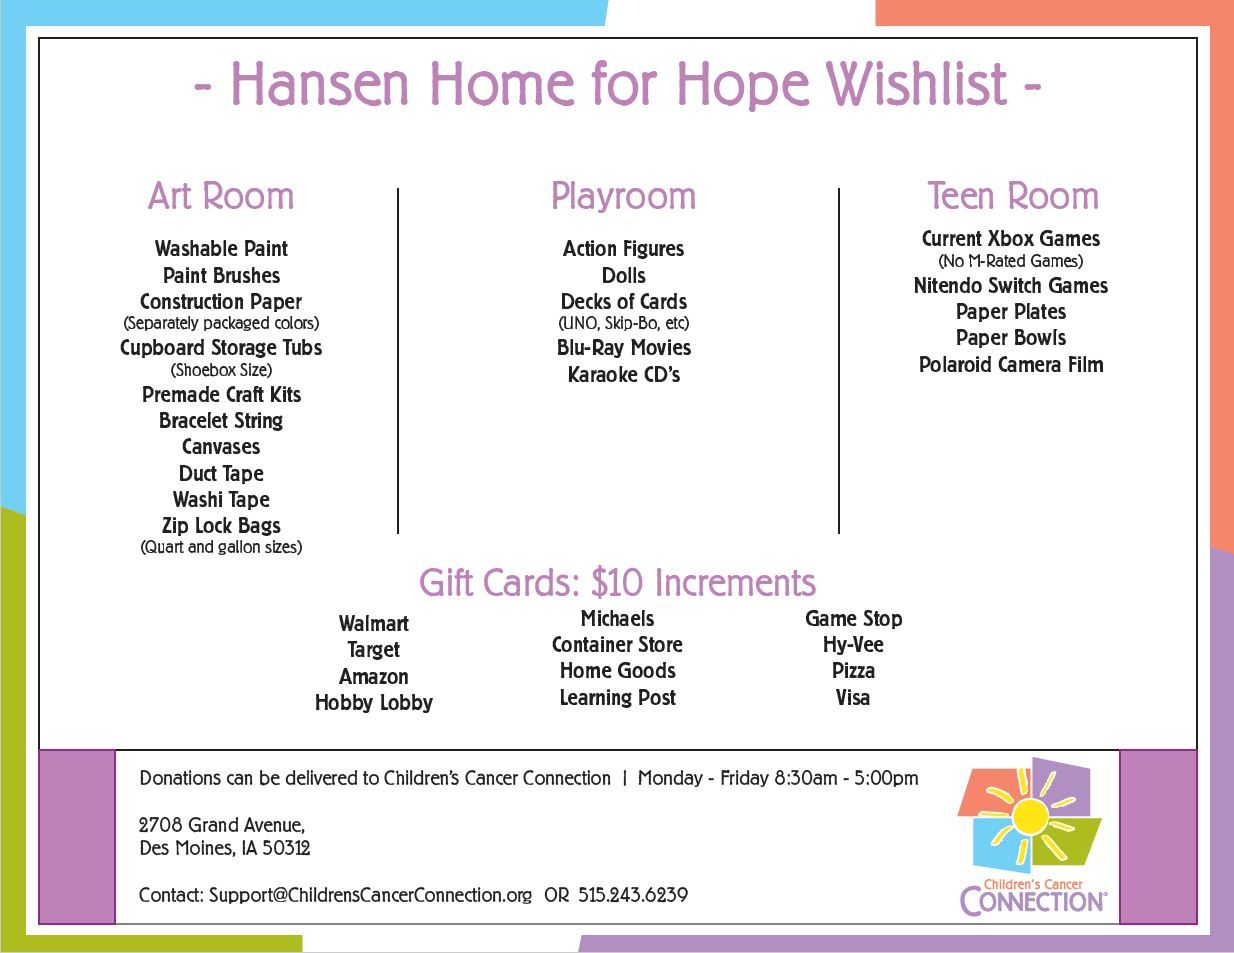 Hansen Home for Hope Wish List